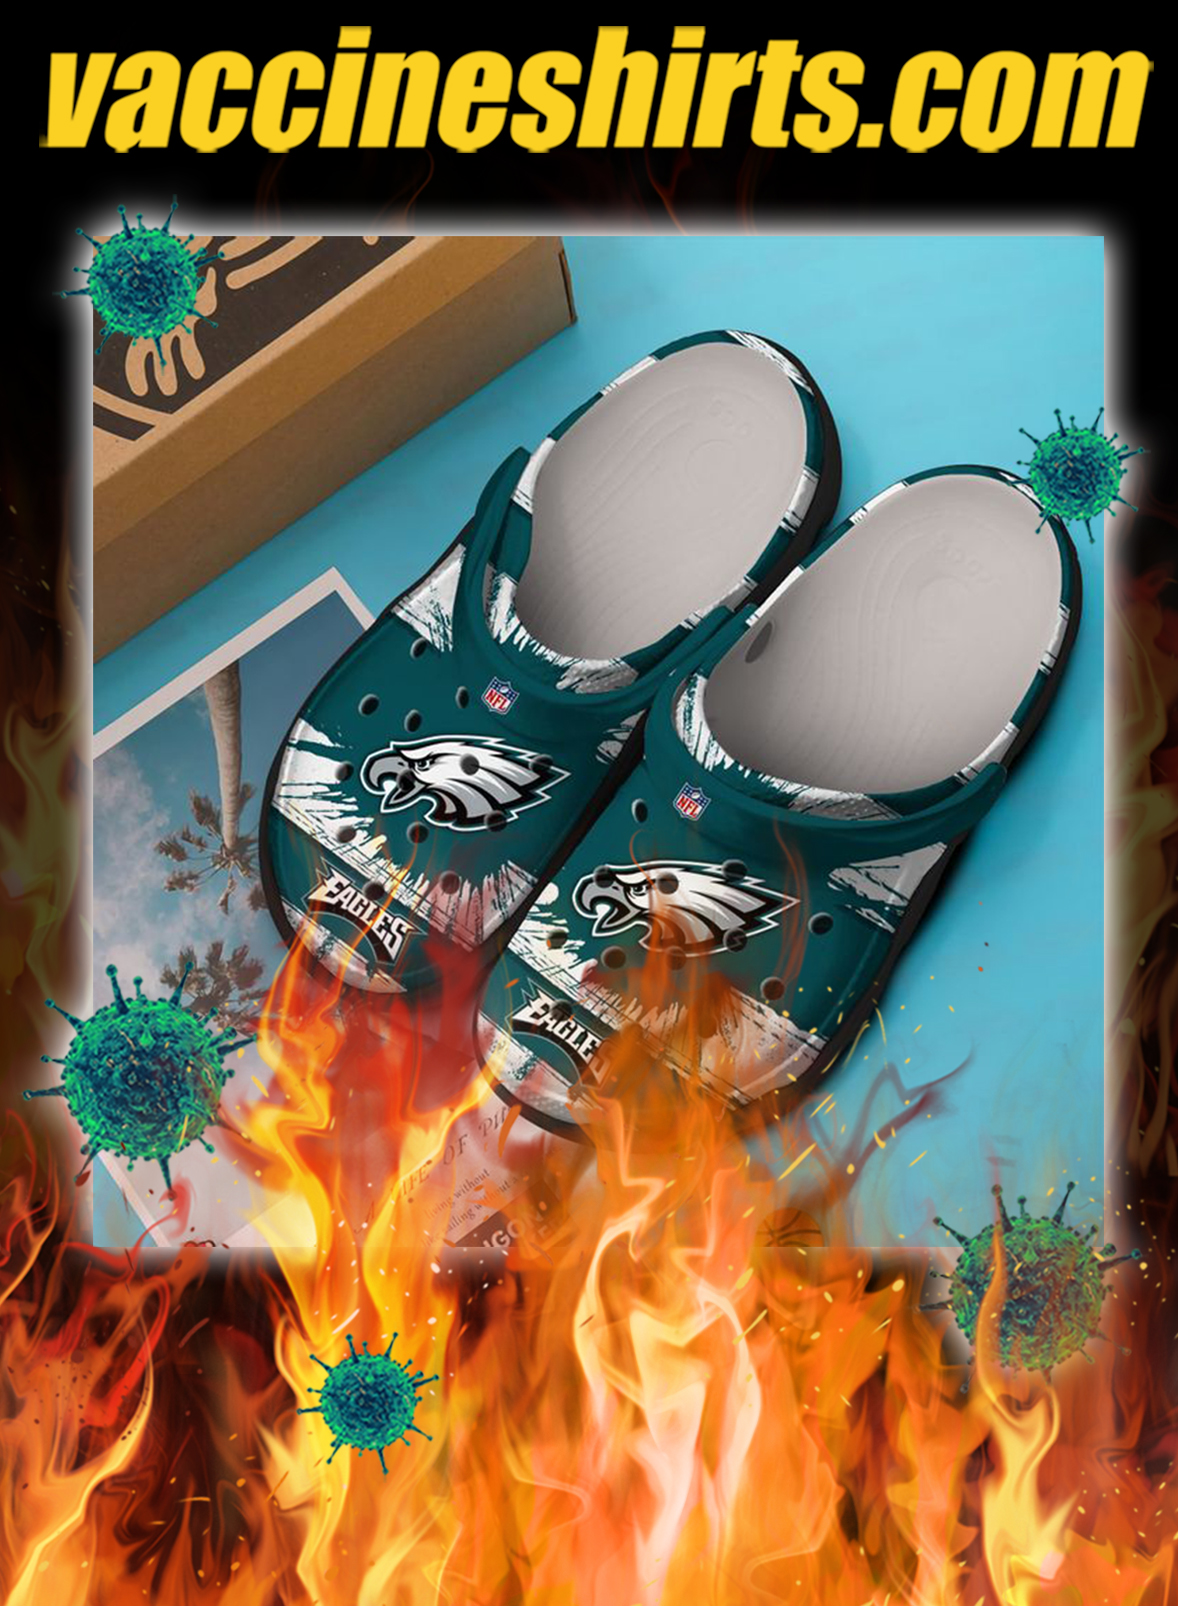 Philadelphia eagles crocs crocband clog - pic 1